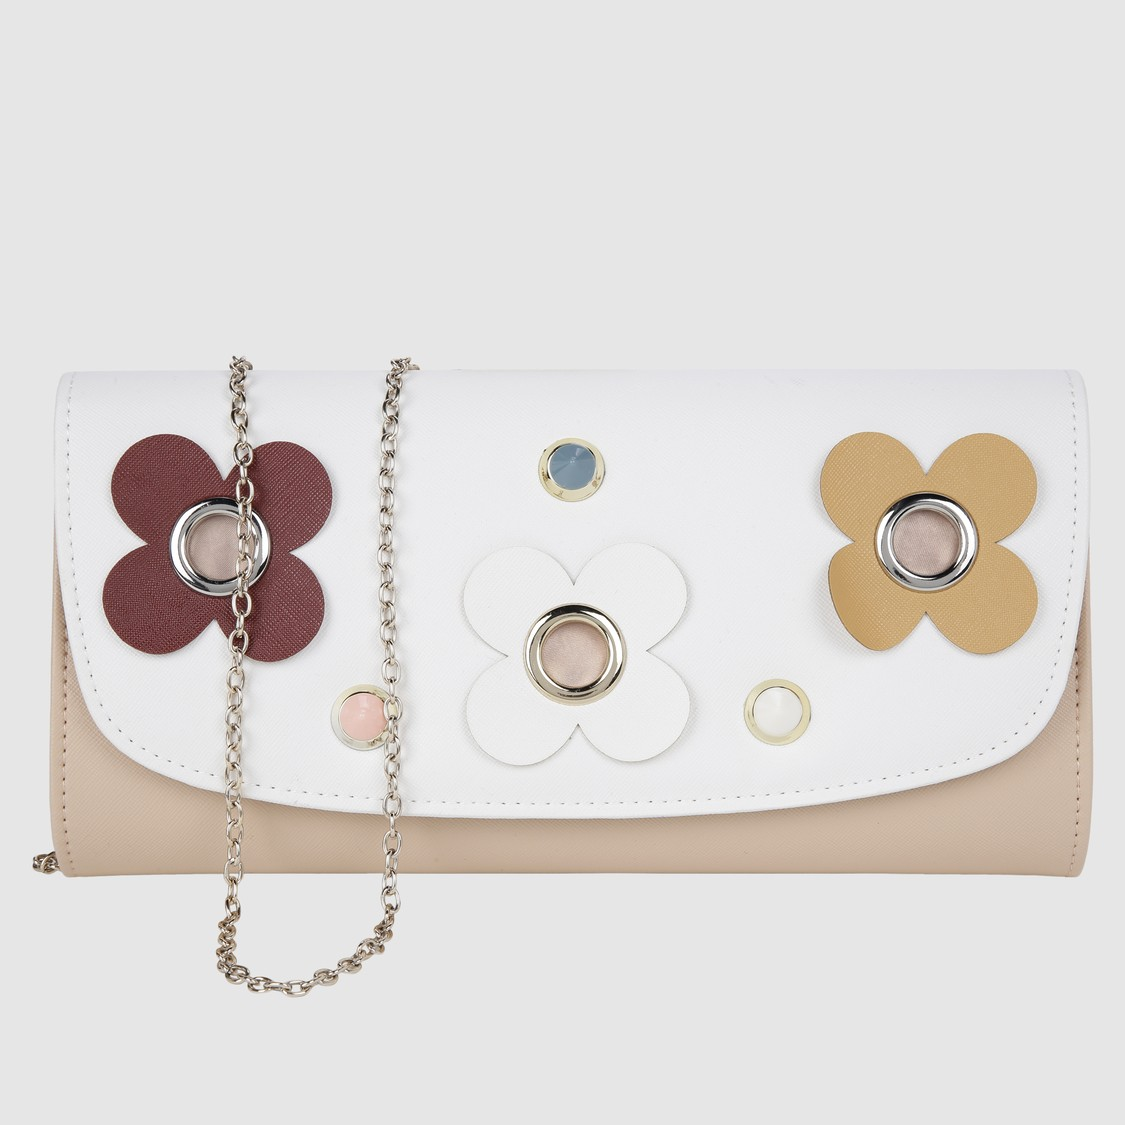 Embellished Sling Bag with Flap and Magnetic Snap Closure